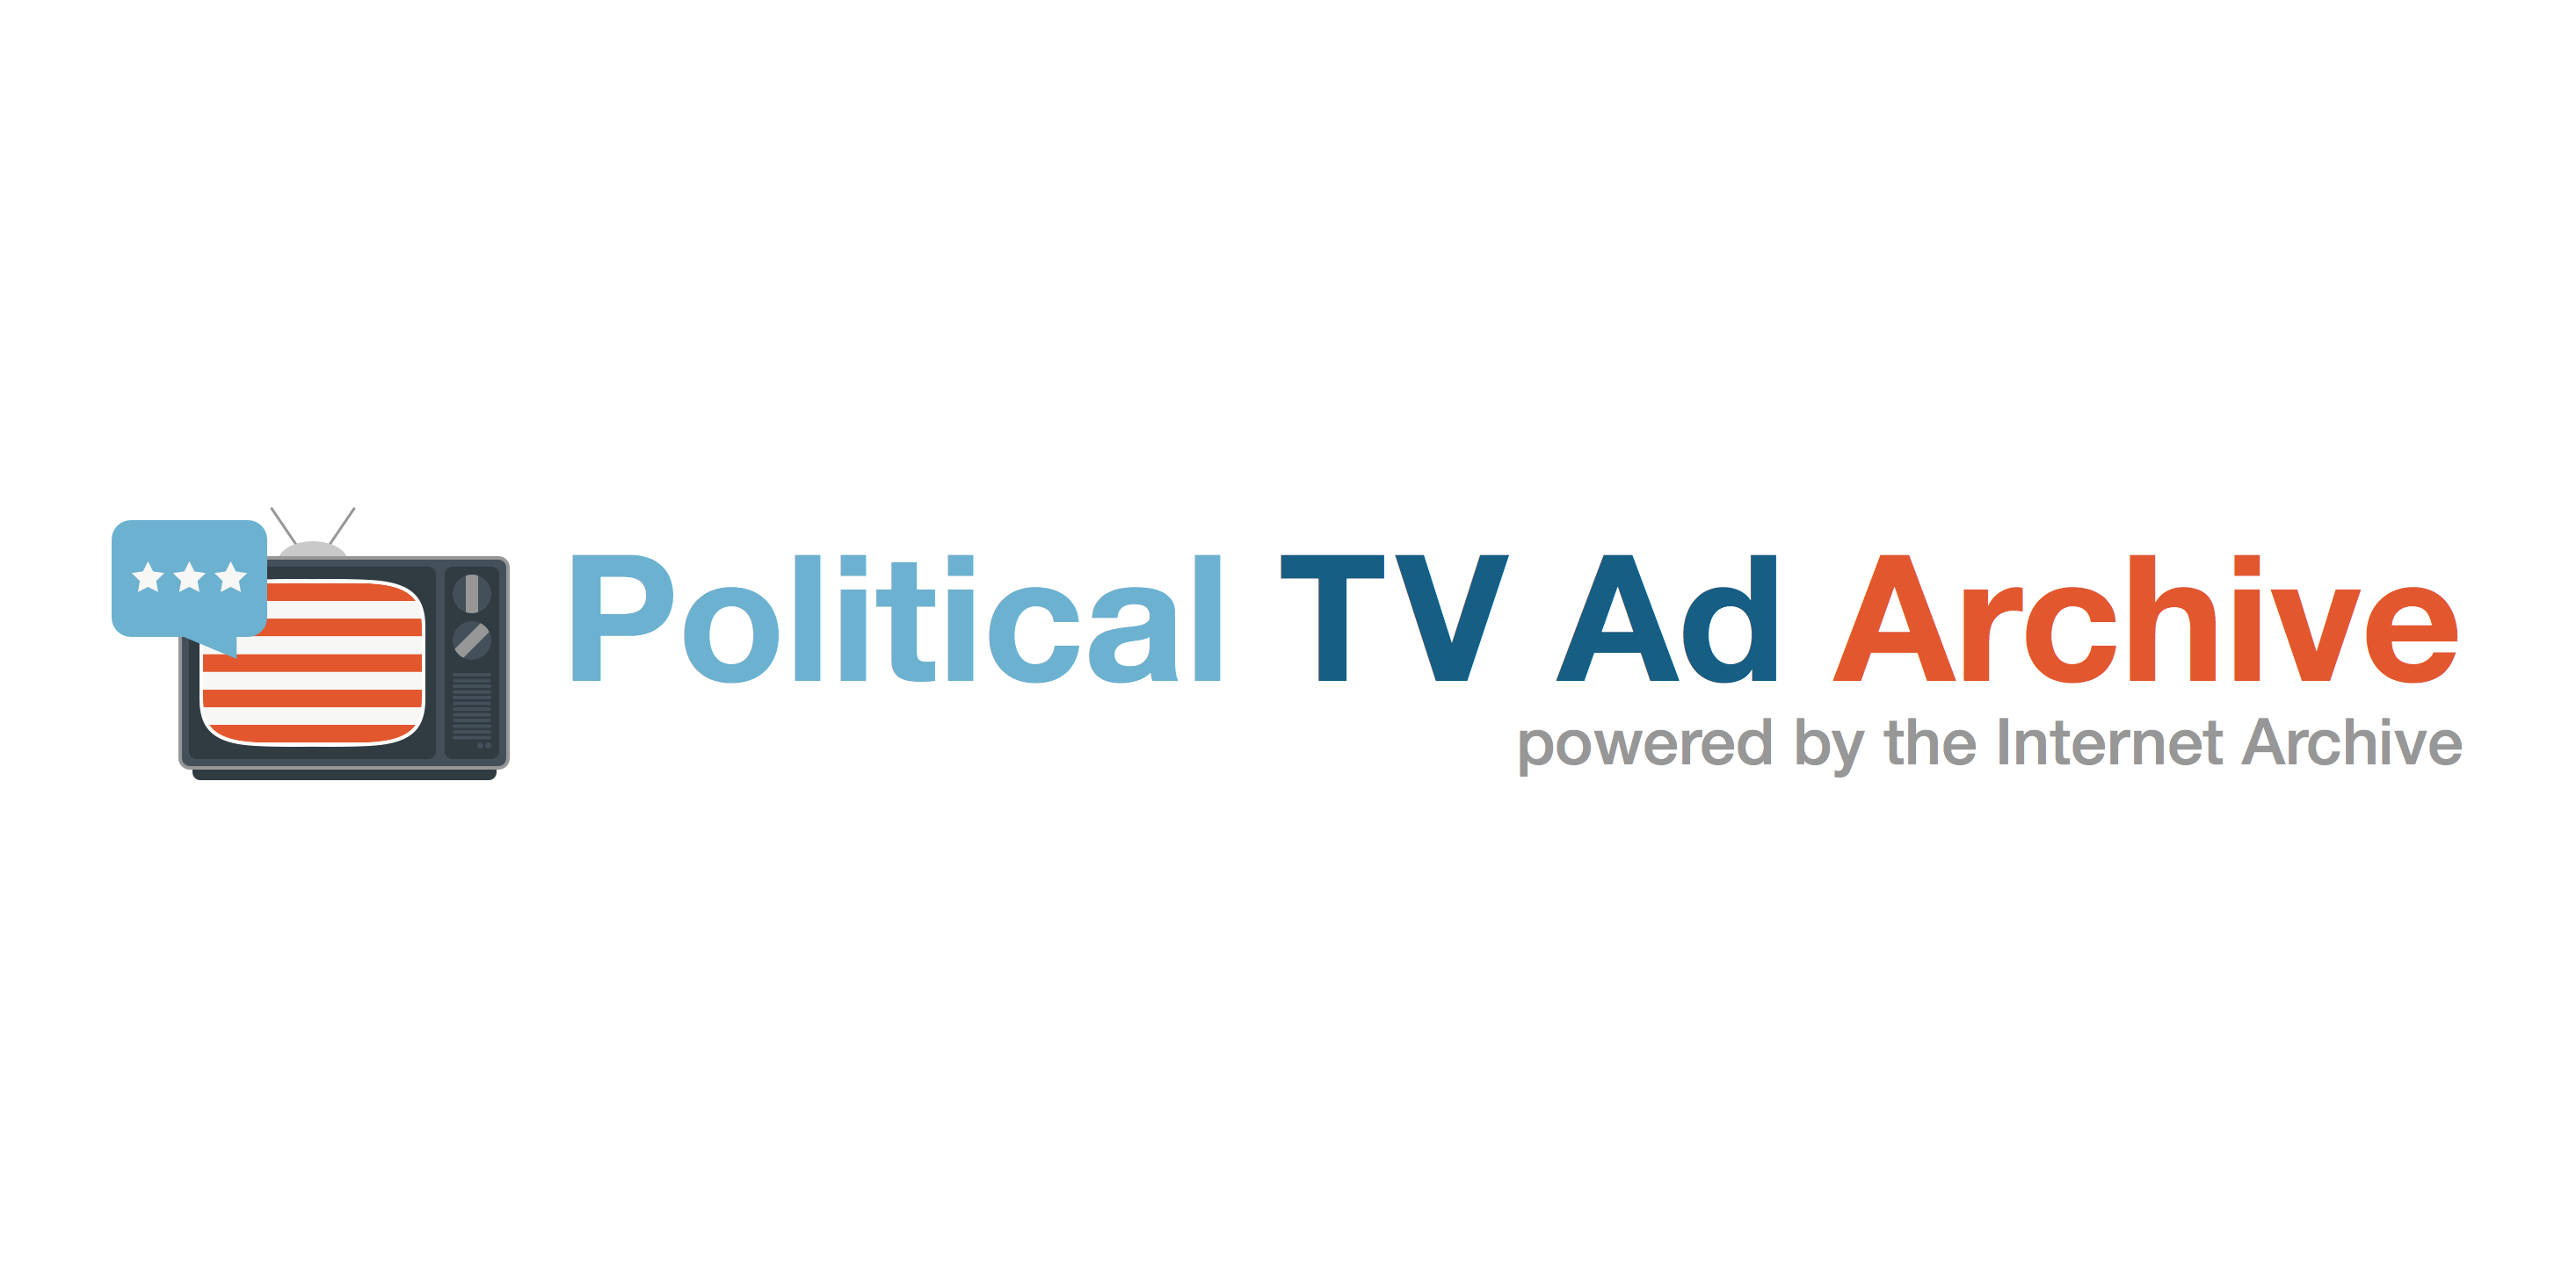 an essay on political television advertising Political advertising: what effect on commercial advertisers shanto iyengar and markus prior department of communication, stanford university.